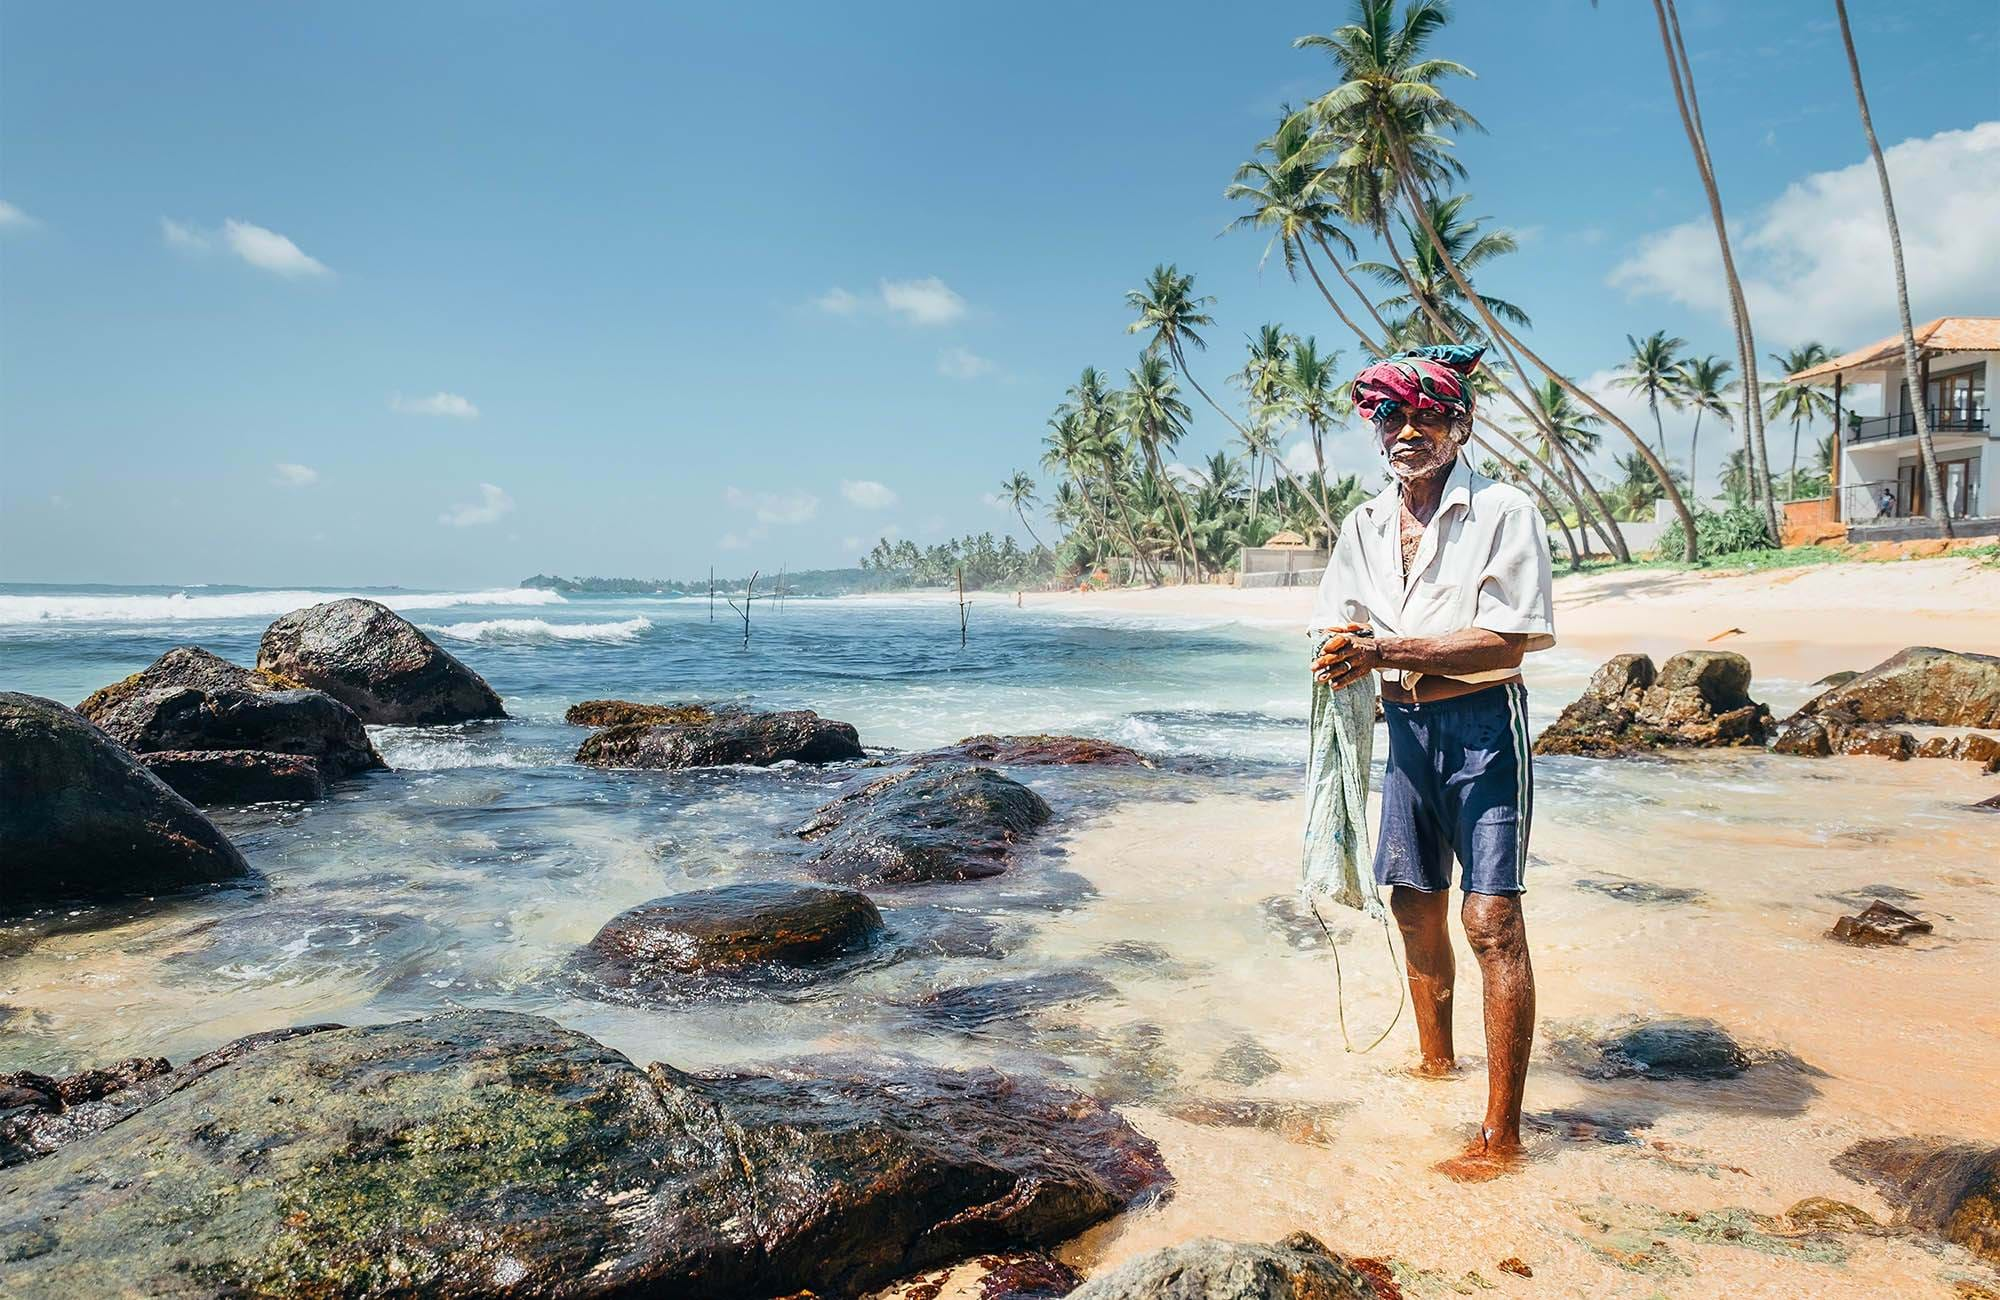 sri-lanka-fisher-man-on-beach